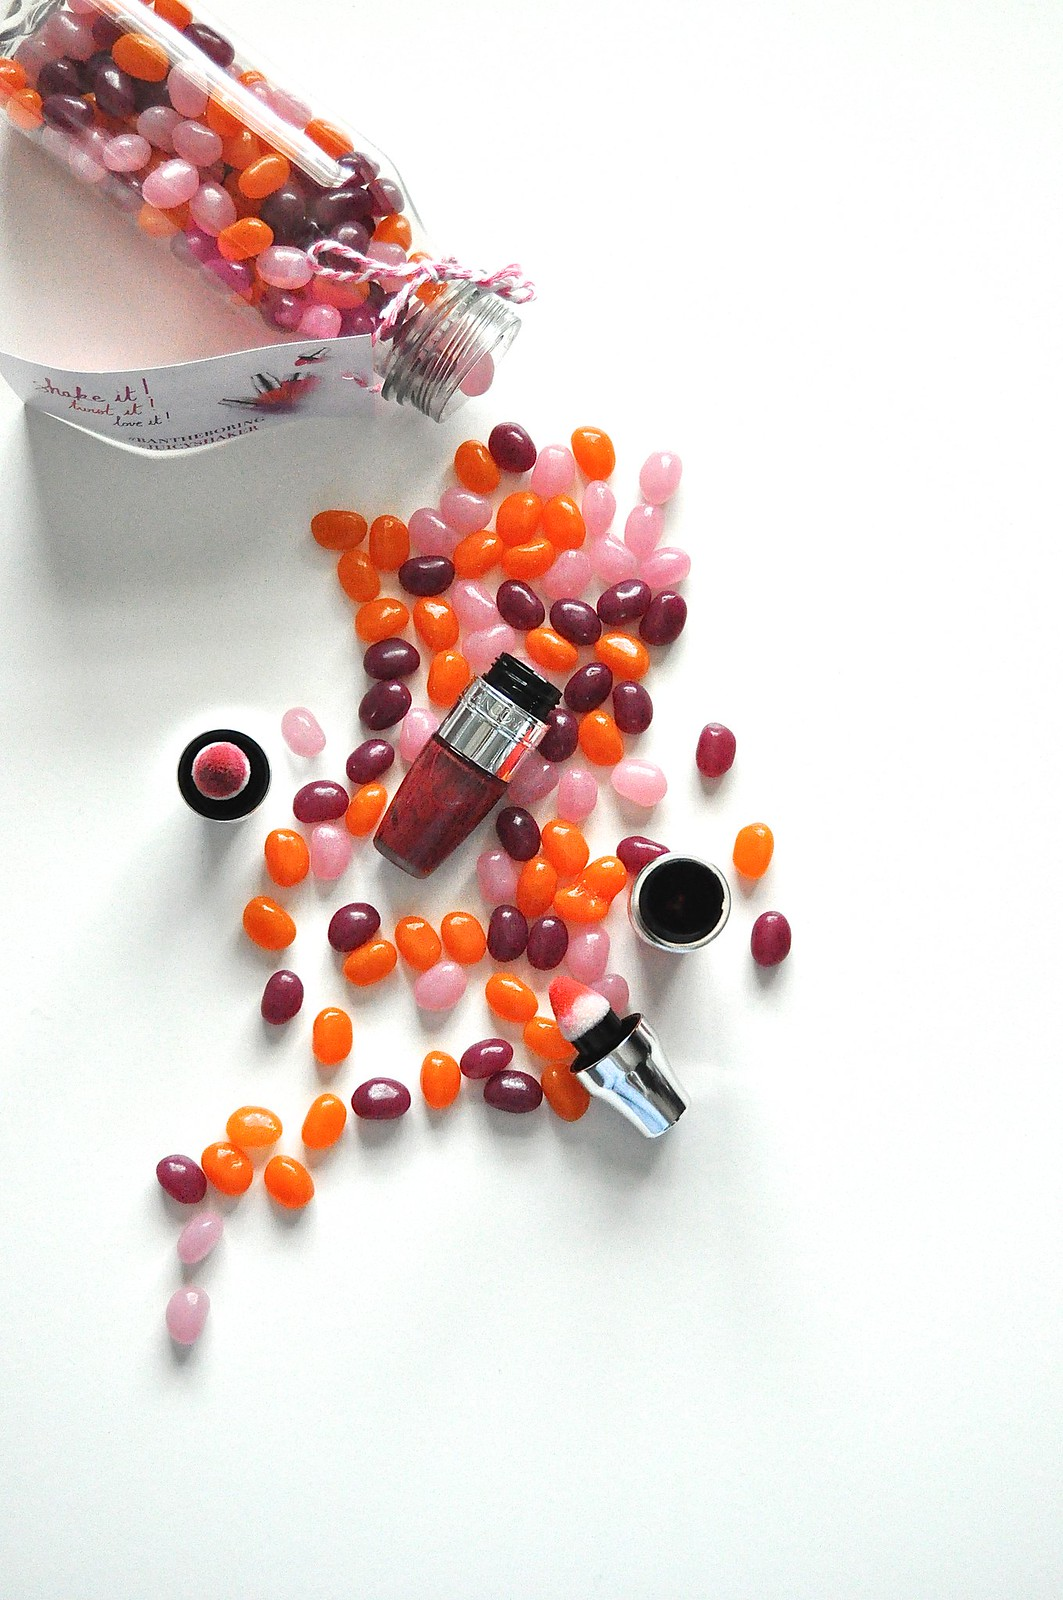 Lancome Juicy Shaker Lip Gloss